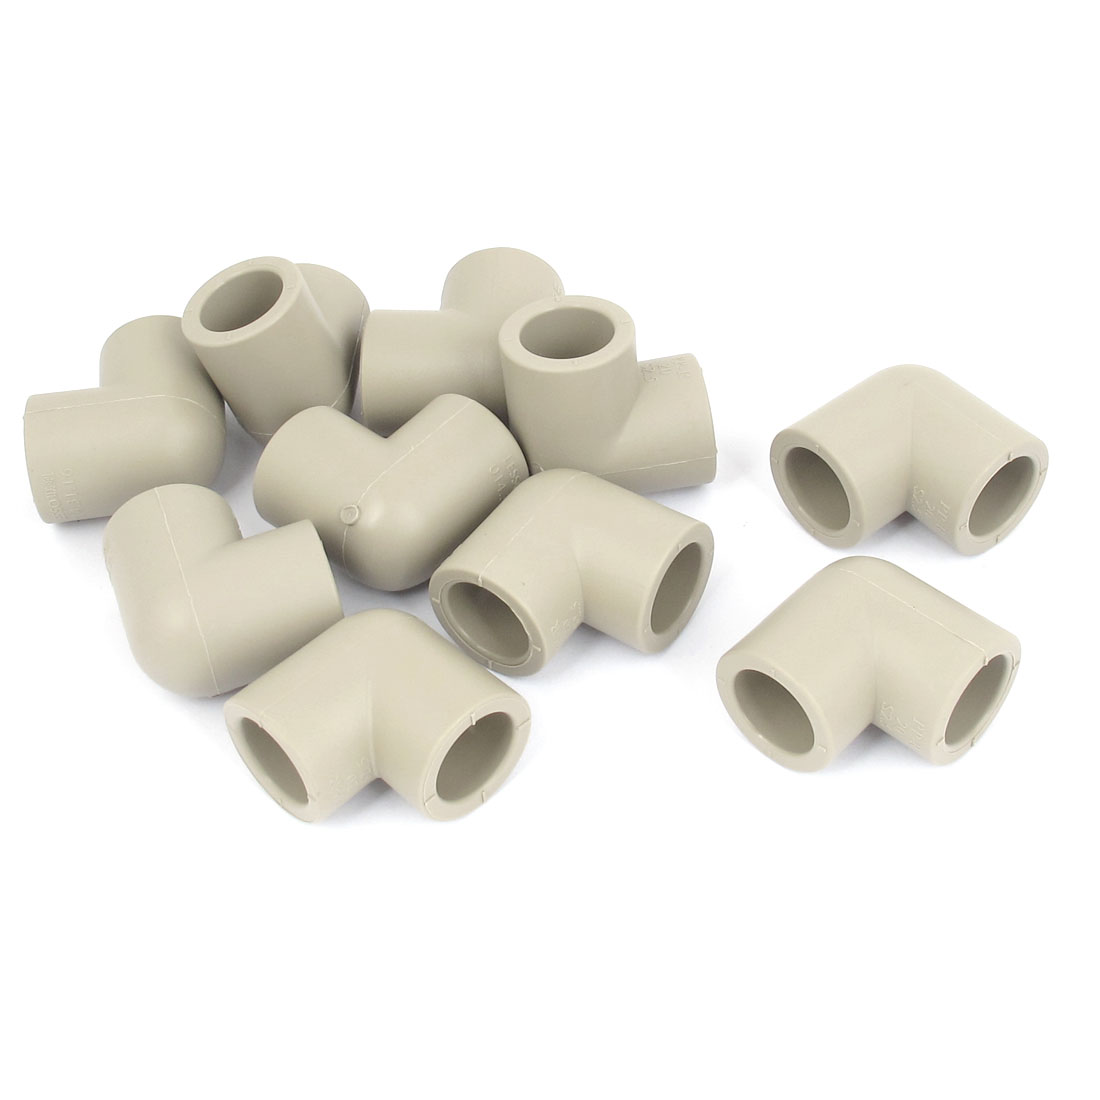 90 Degree Elbow PPR Pipe Connectors Gray 20mm Inner Diameter 10 Pcs